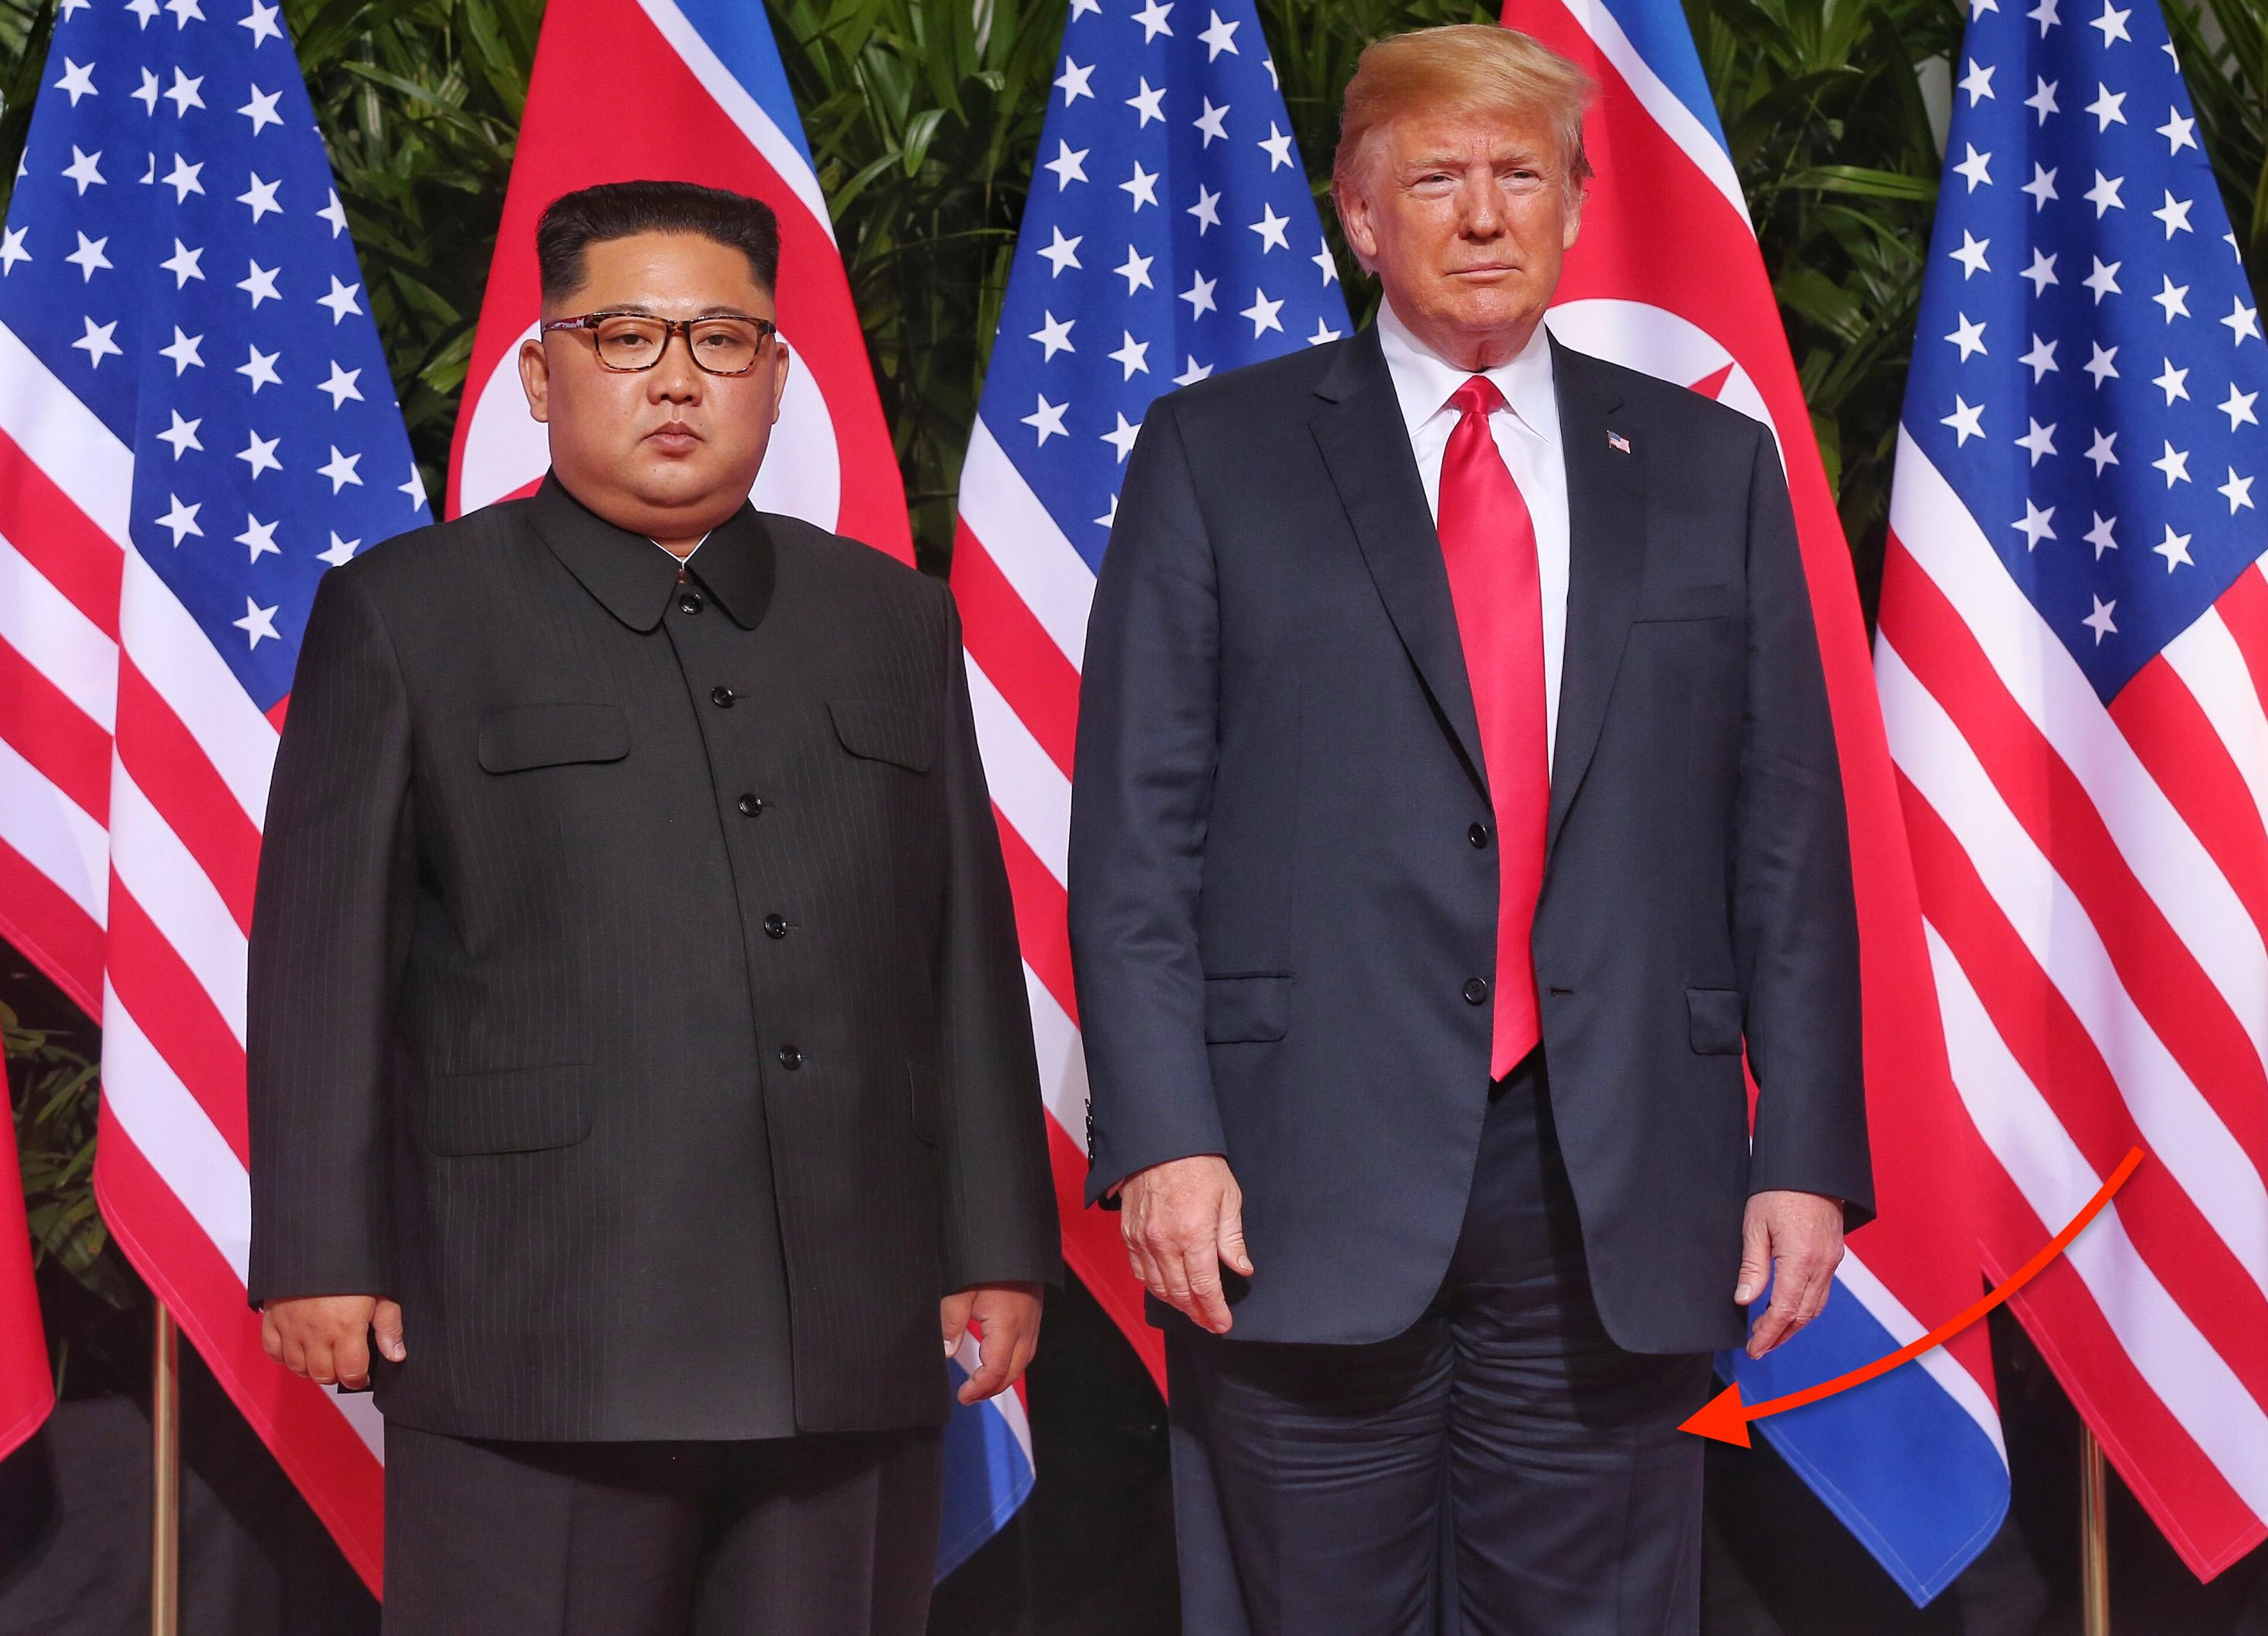 U.S. President Trump Meets North Korean Leader Kim Jong-un During Landmark Summit In Singapore focus on suit wrinkles